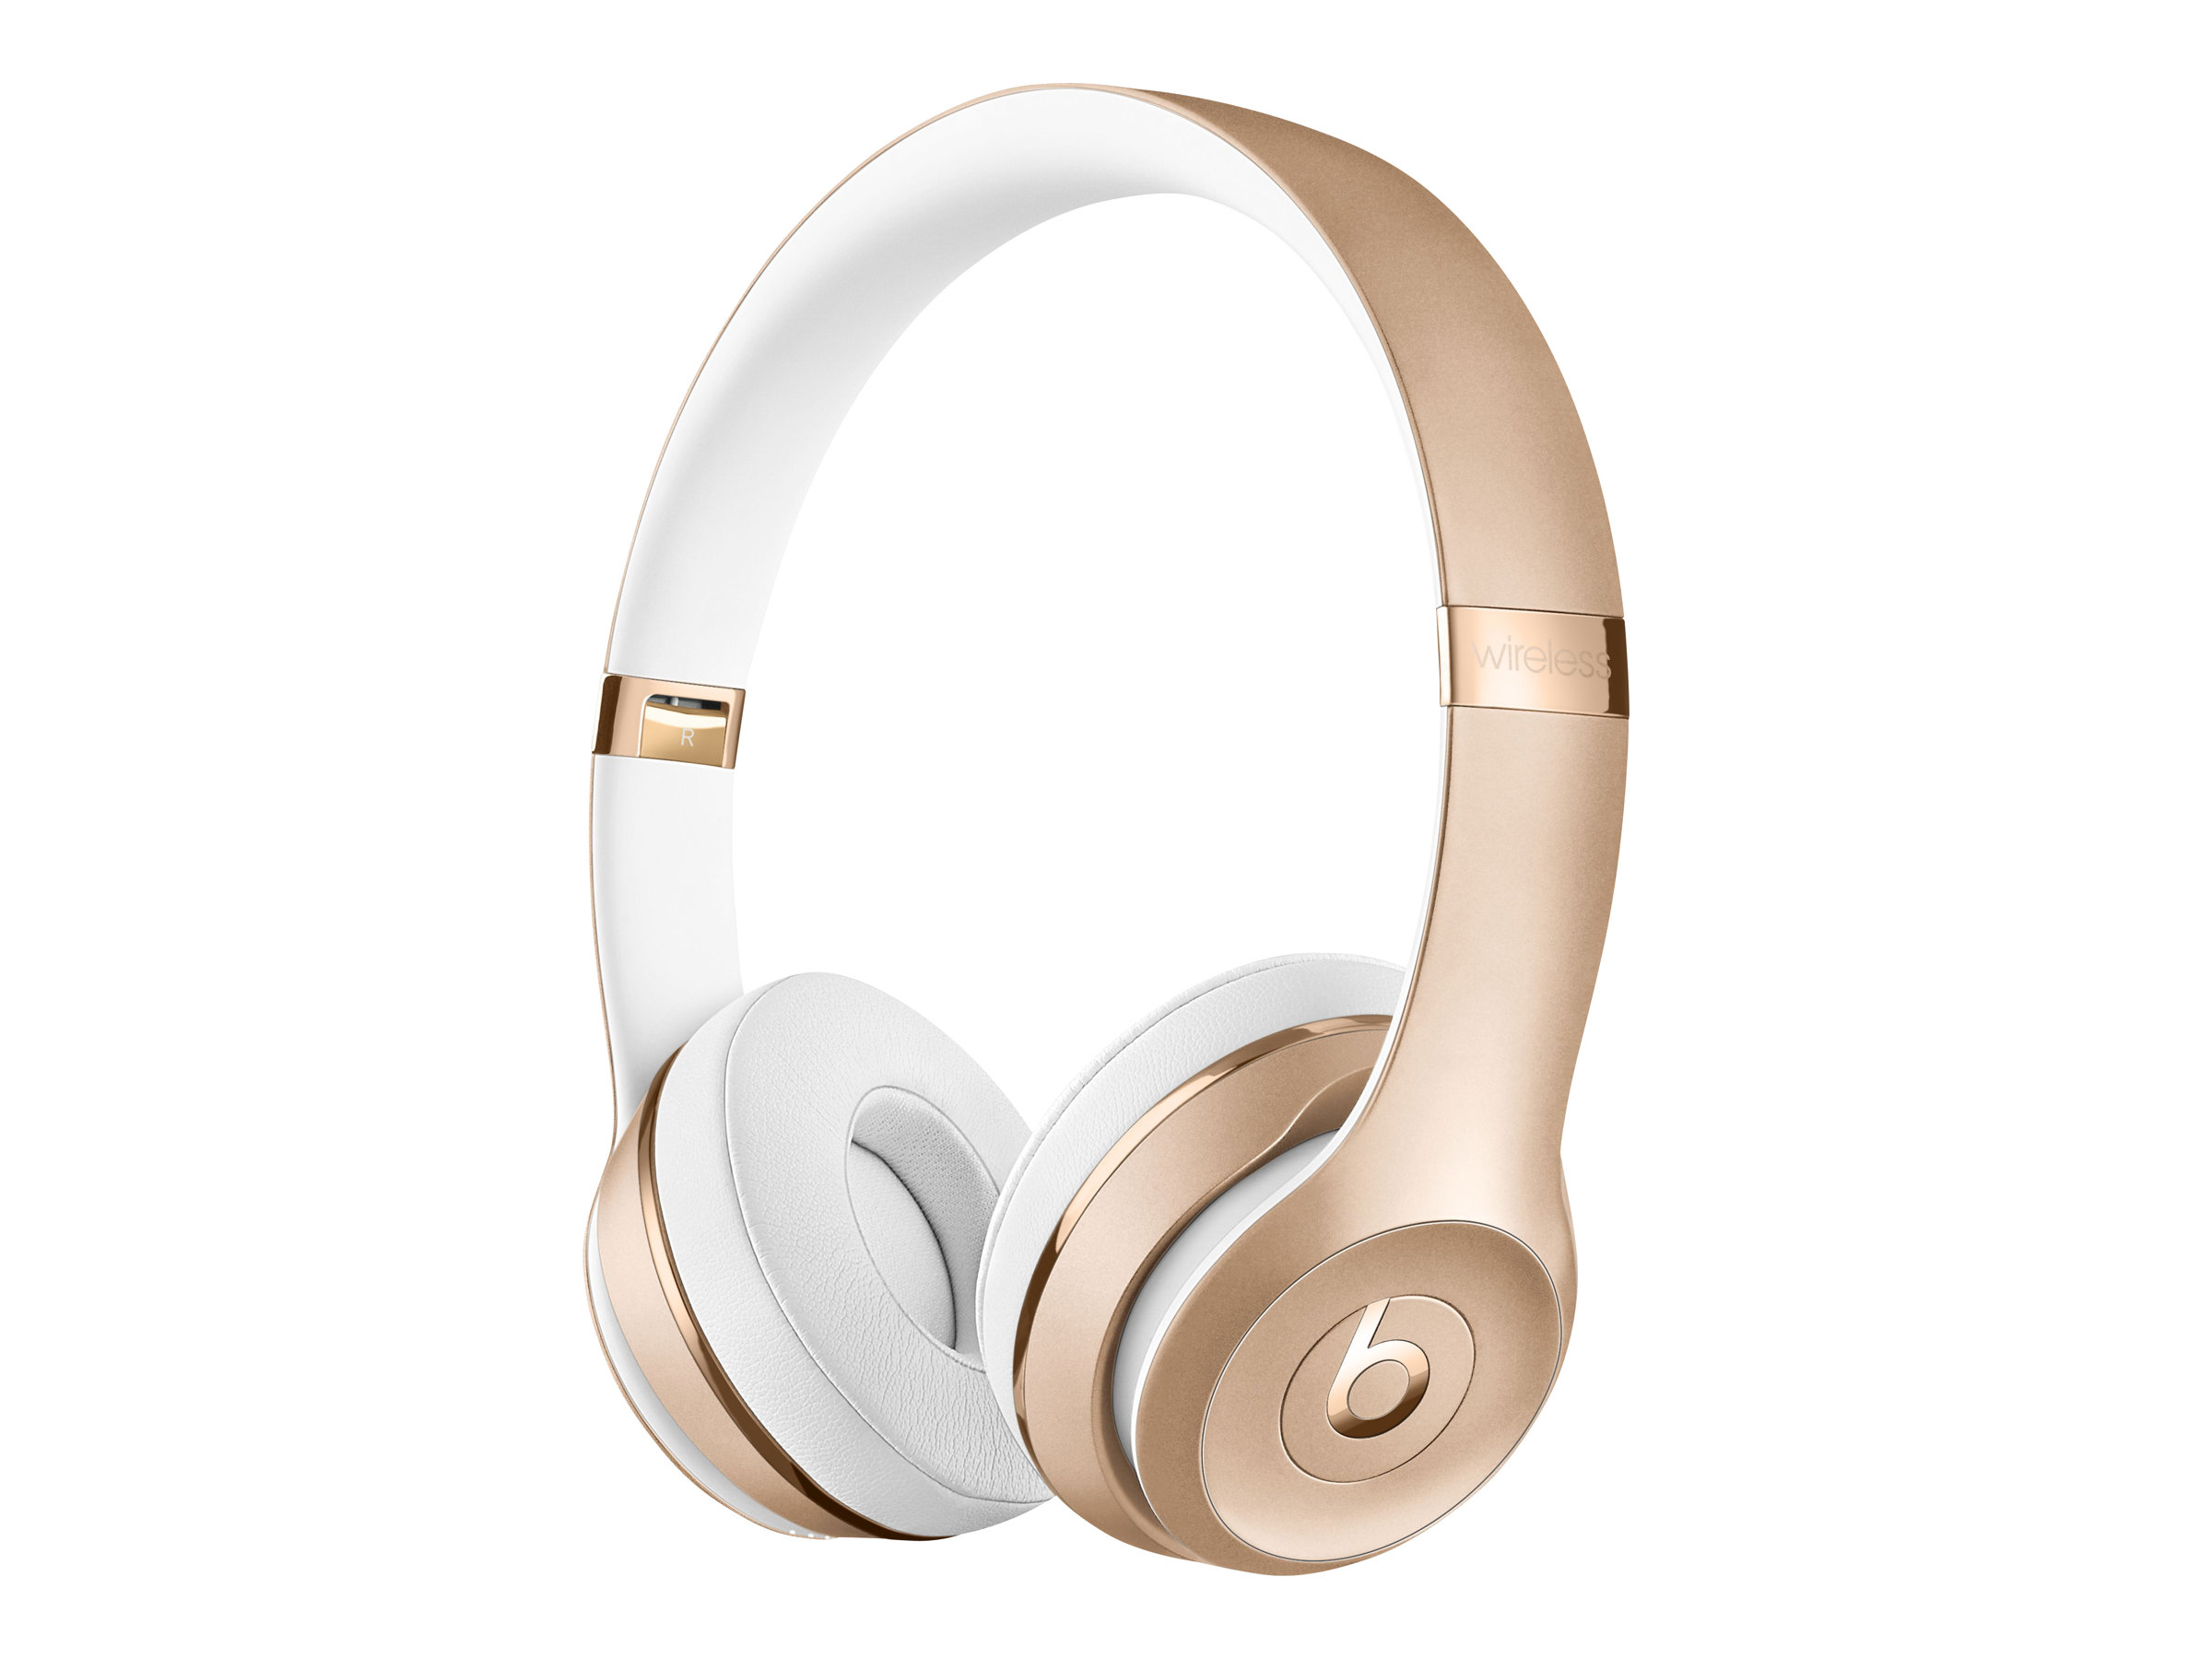 Beats Solo3 - Kopfhörer mit Mikrofon - On-Ear - Bluetooth - kabellos - Gold